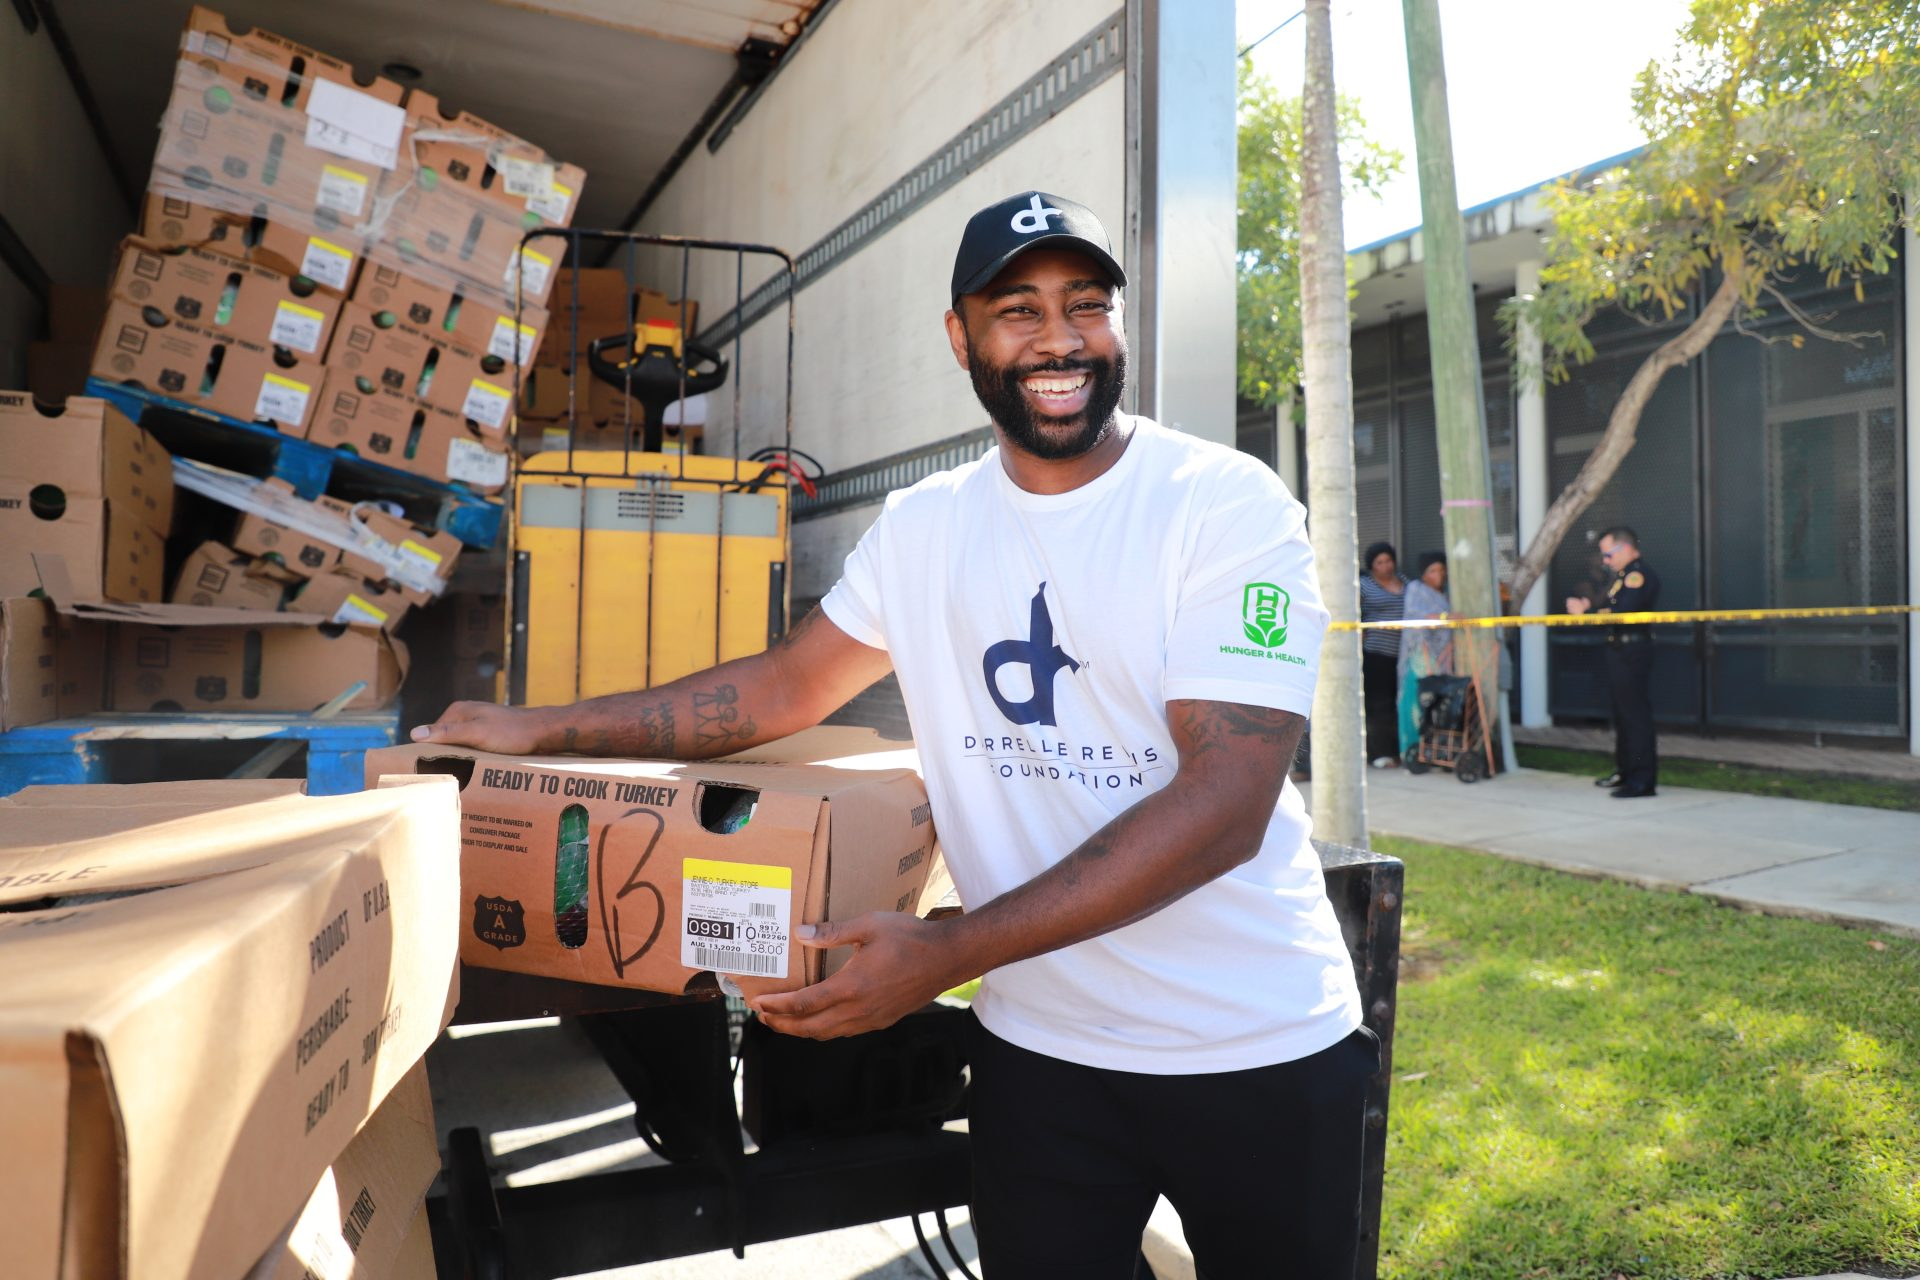 Turkey Giveaway - Darrelle Revis Foundation